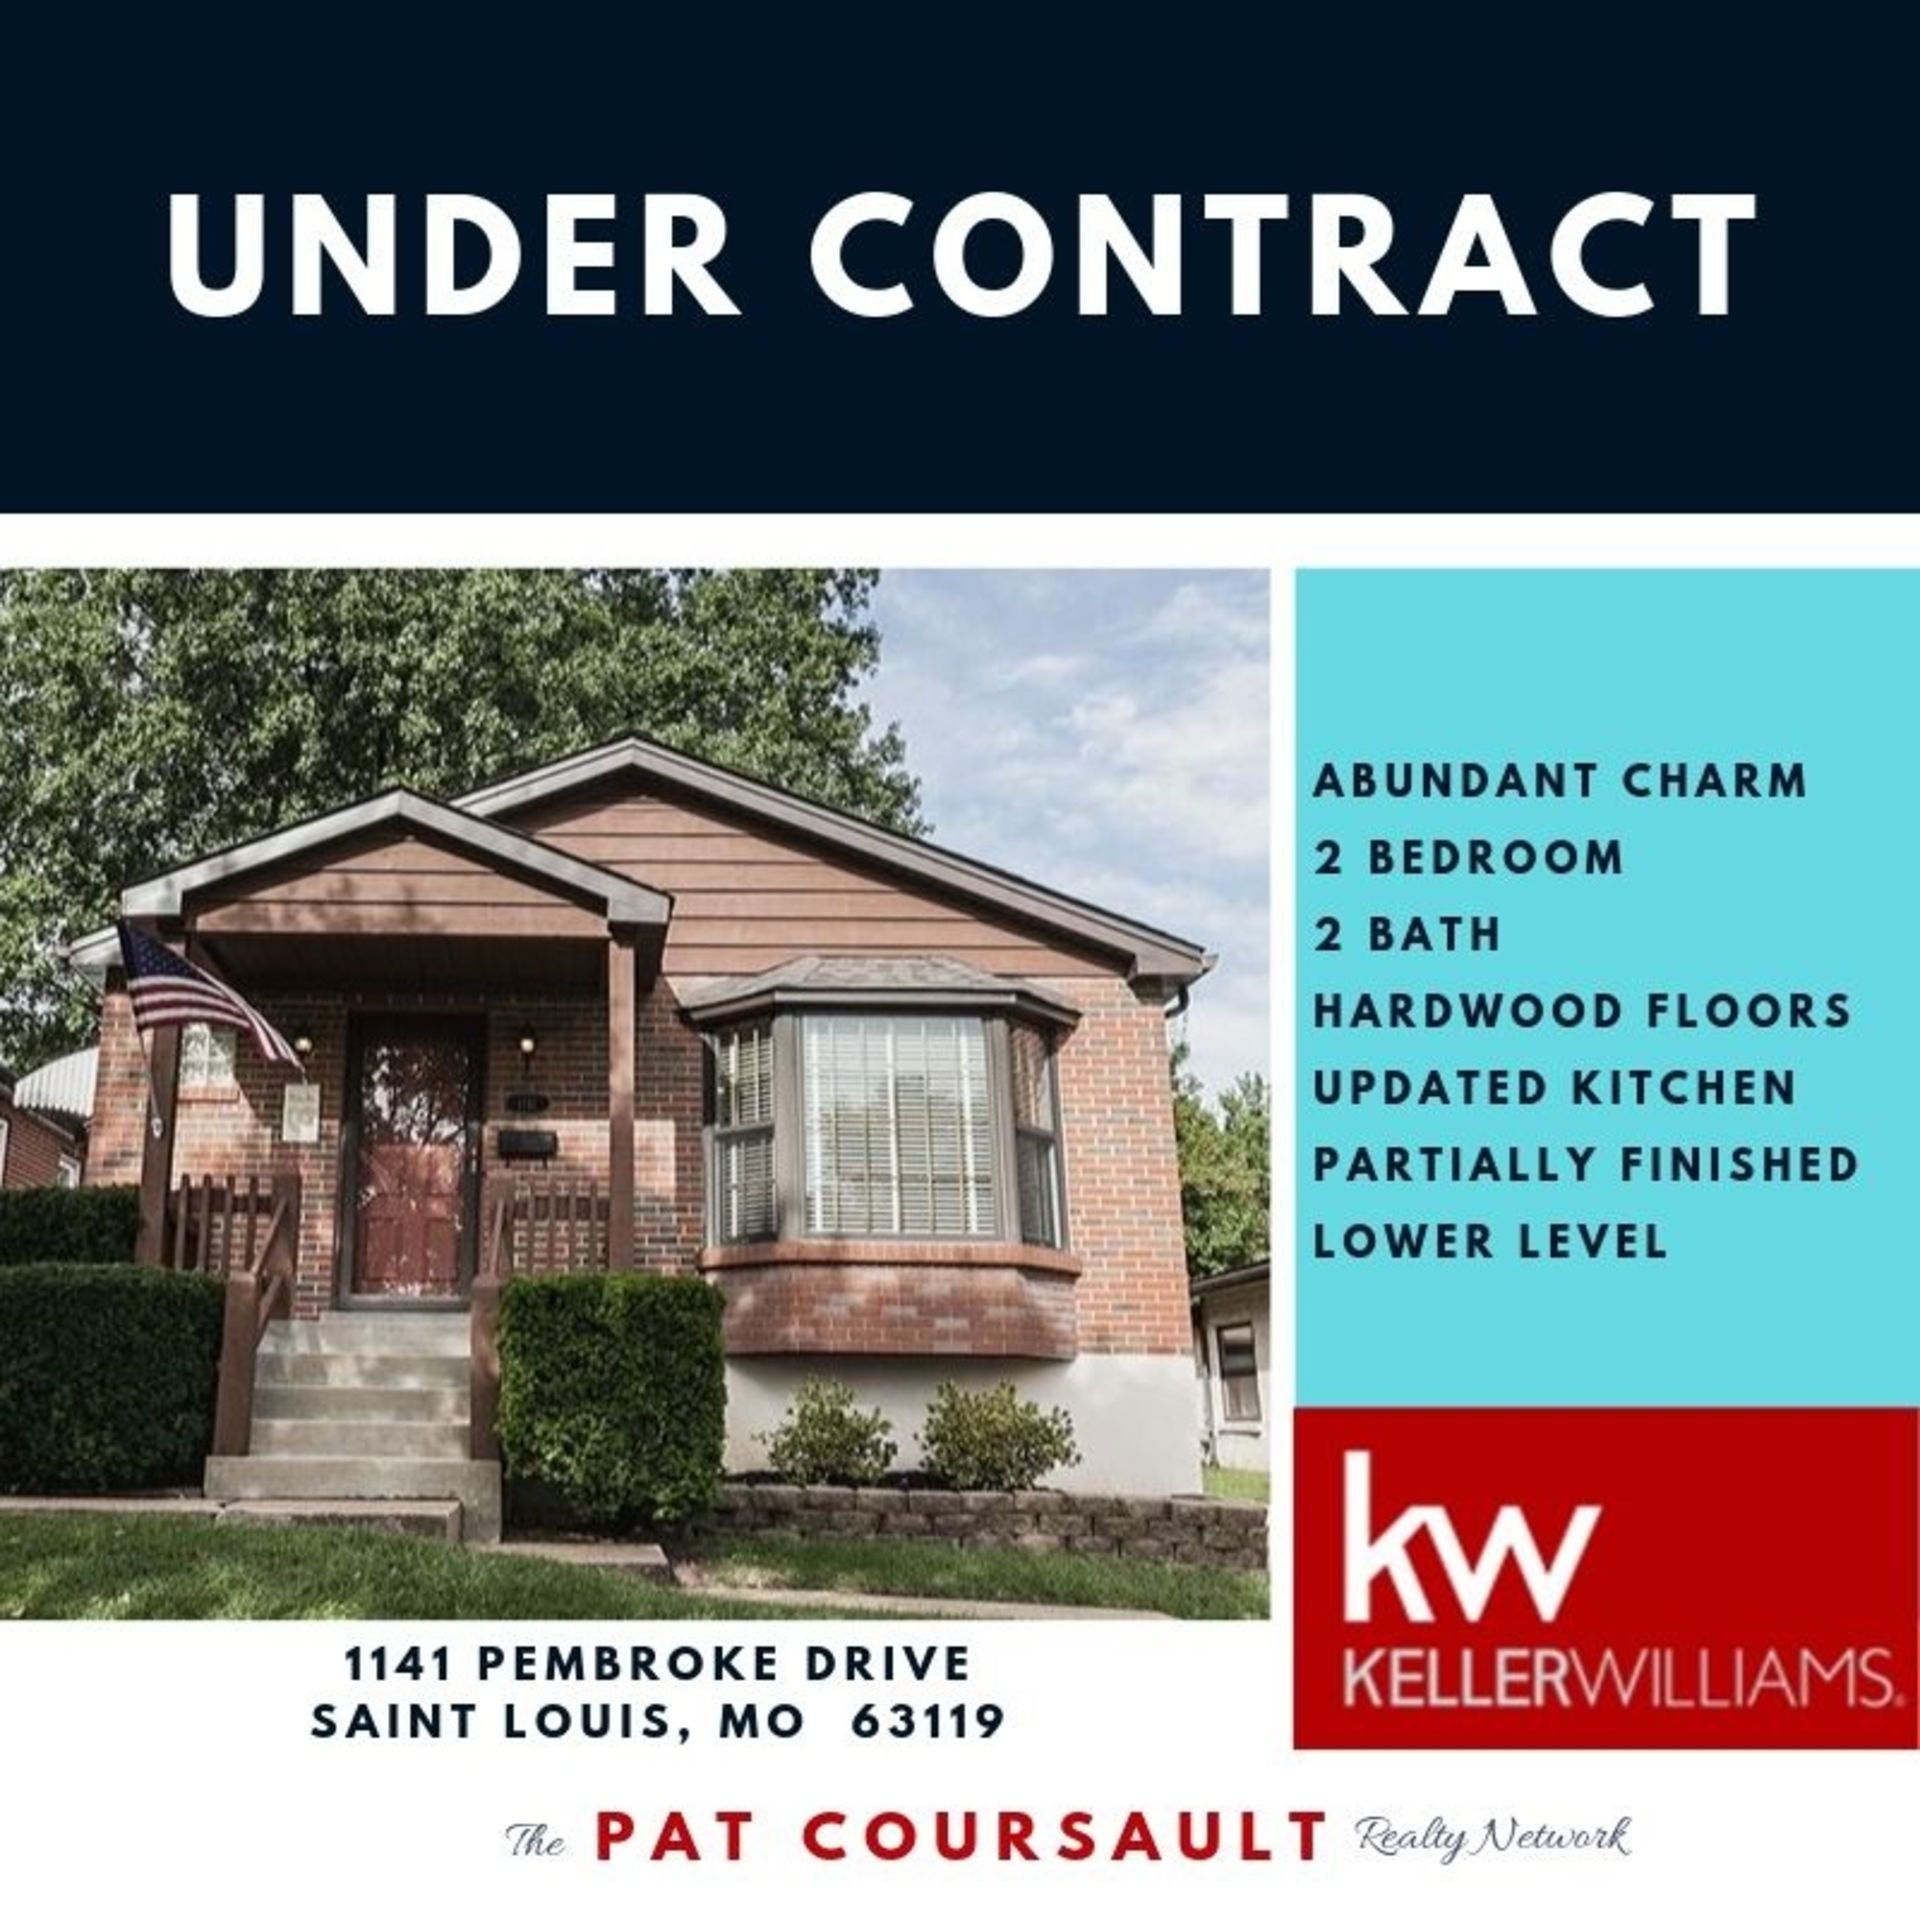 UNDER CONTRACT…1141 Pembroke Drive, 63119